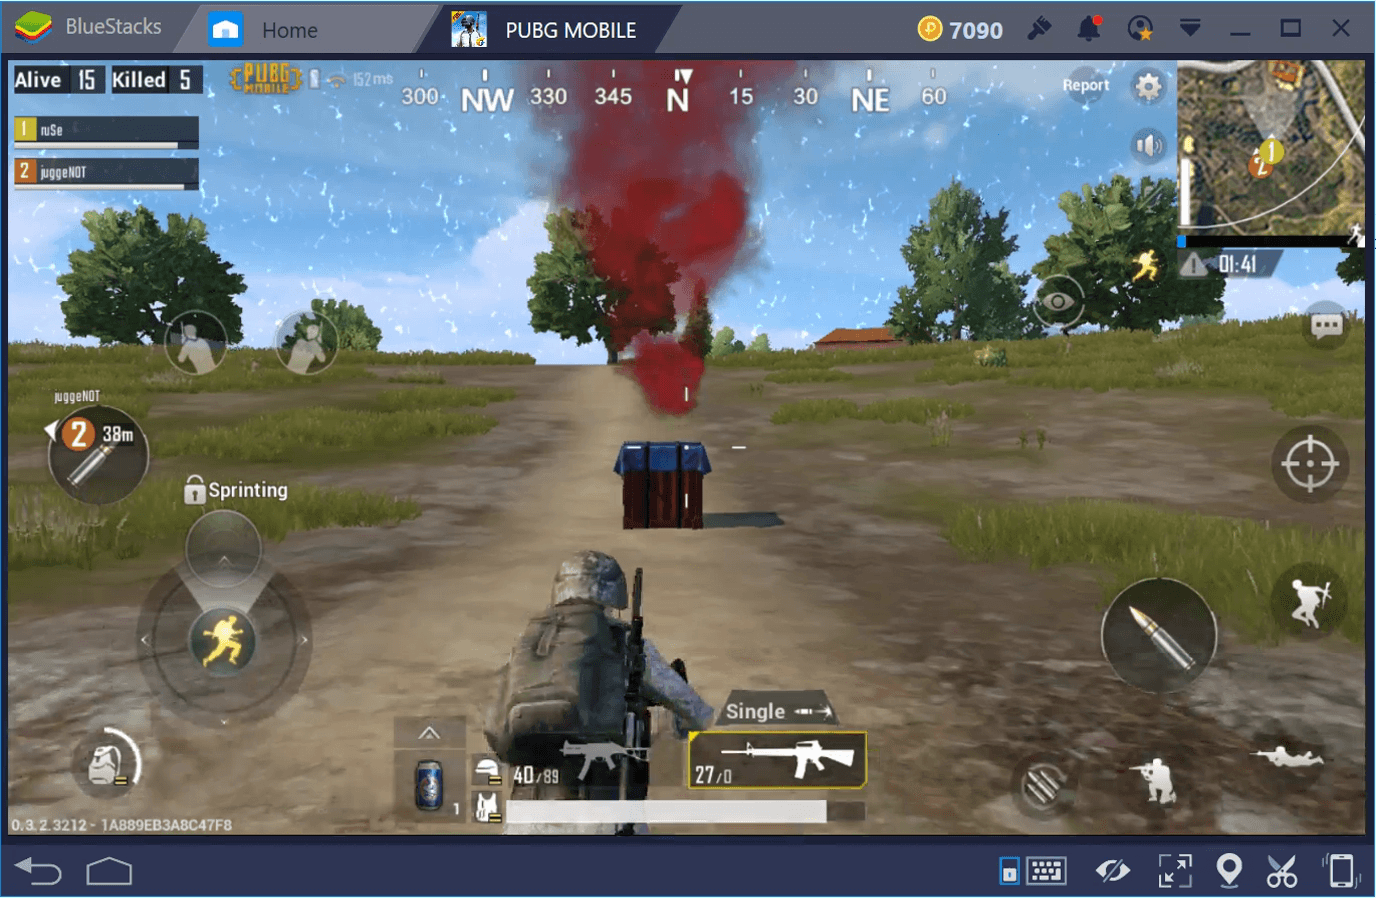 PUBG Mobile Loot Guide – Top Places To Find The Best Loot